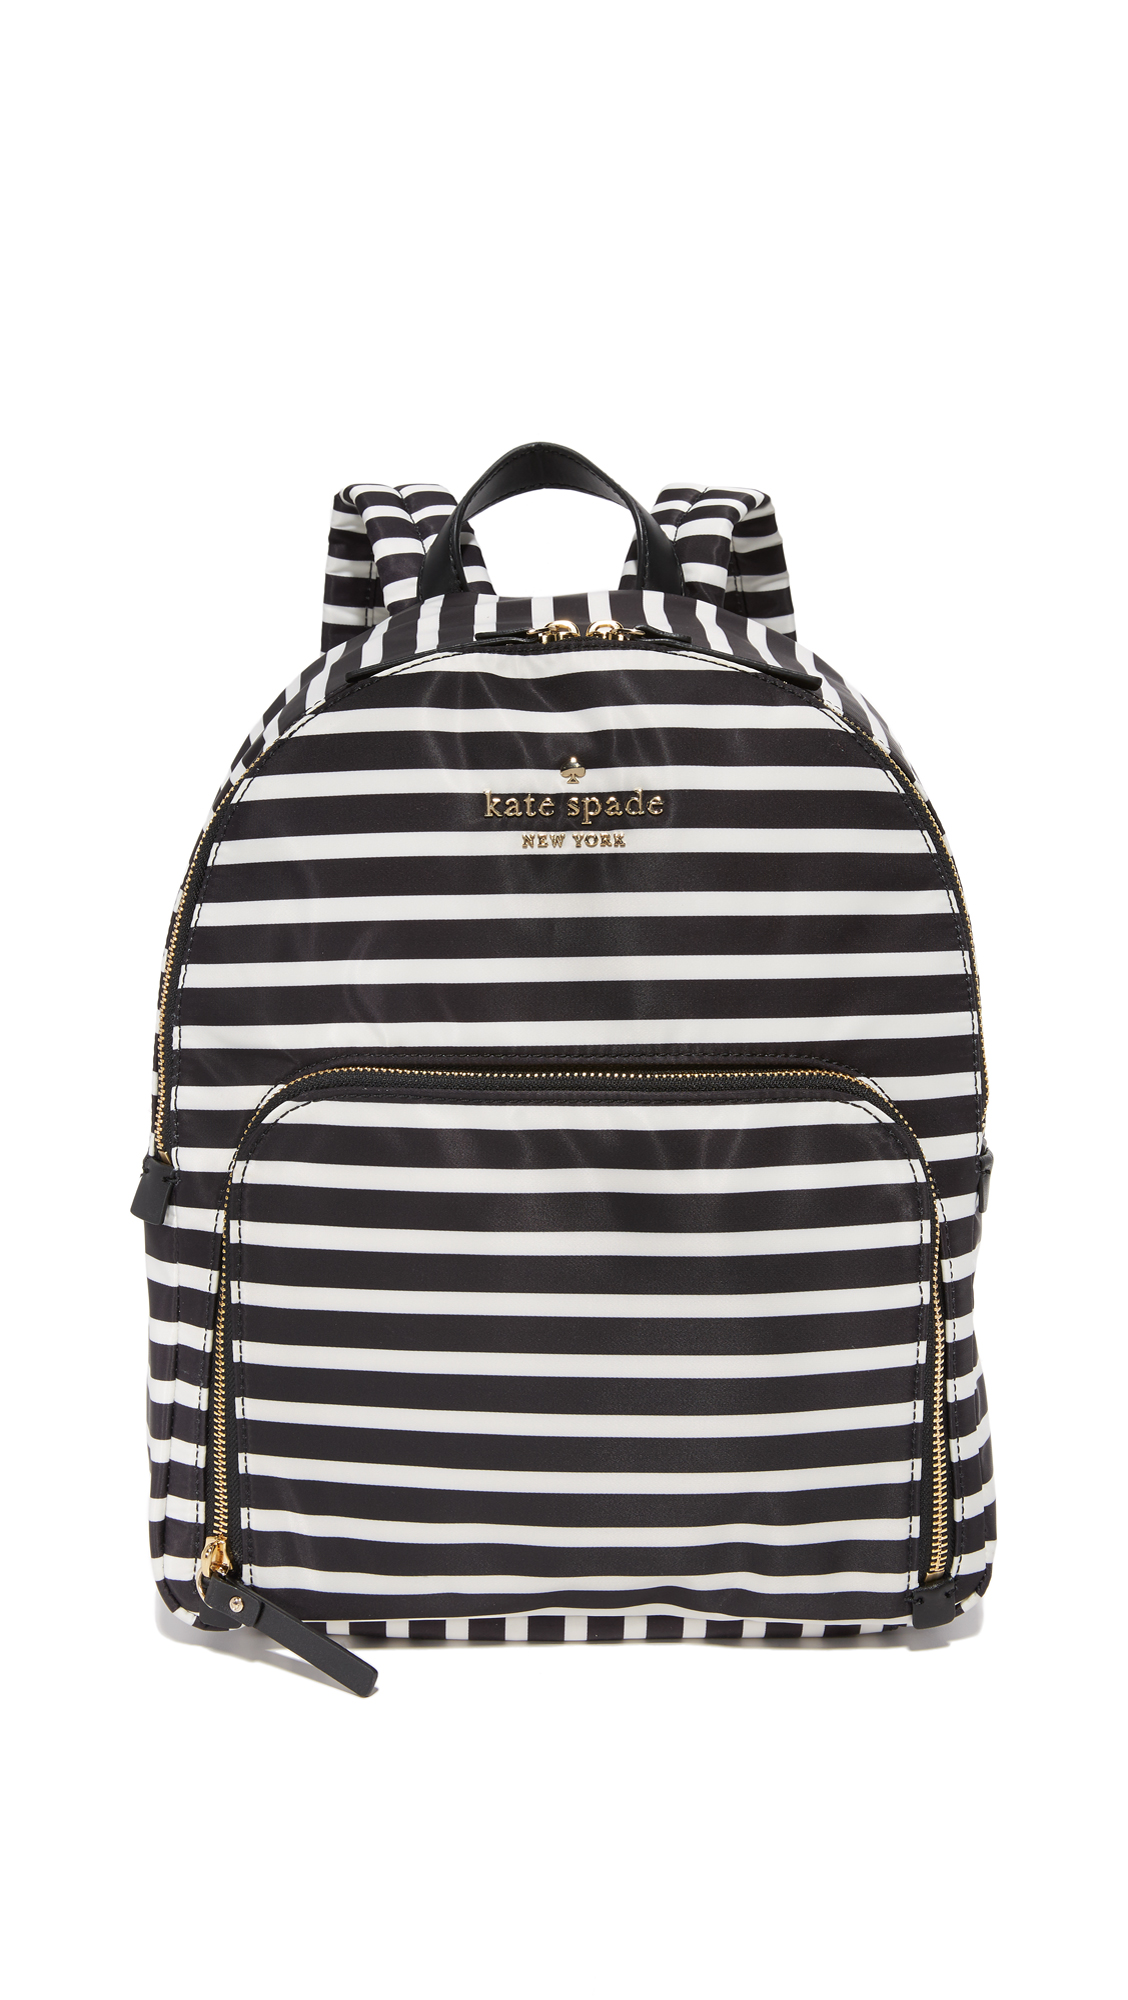 Kate Spade New York Watson Lane Hartley Backpack - Black/Clotted Cream